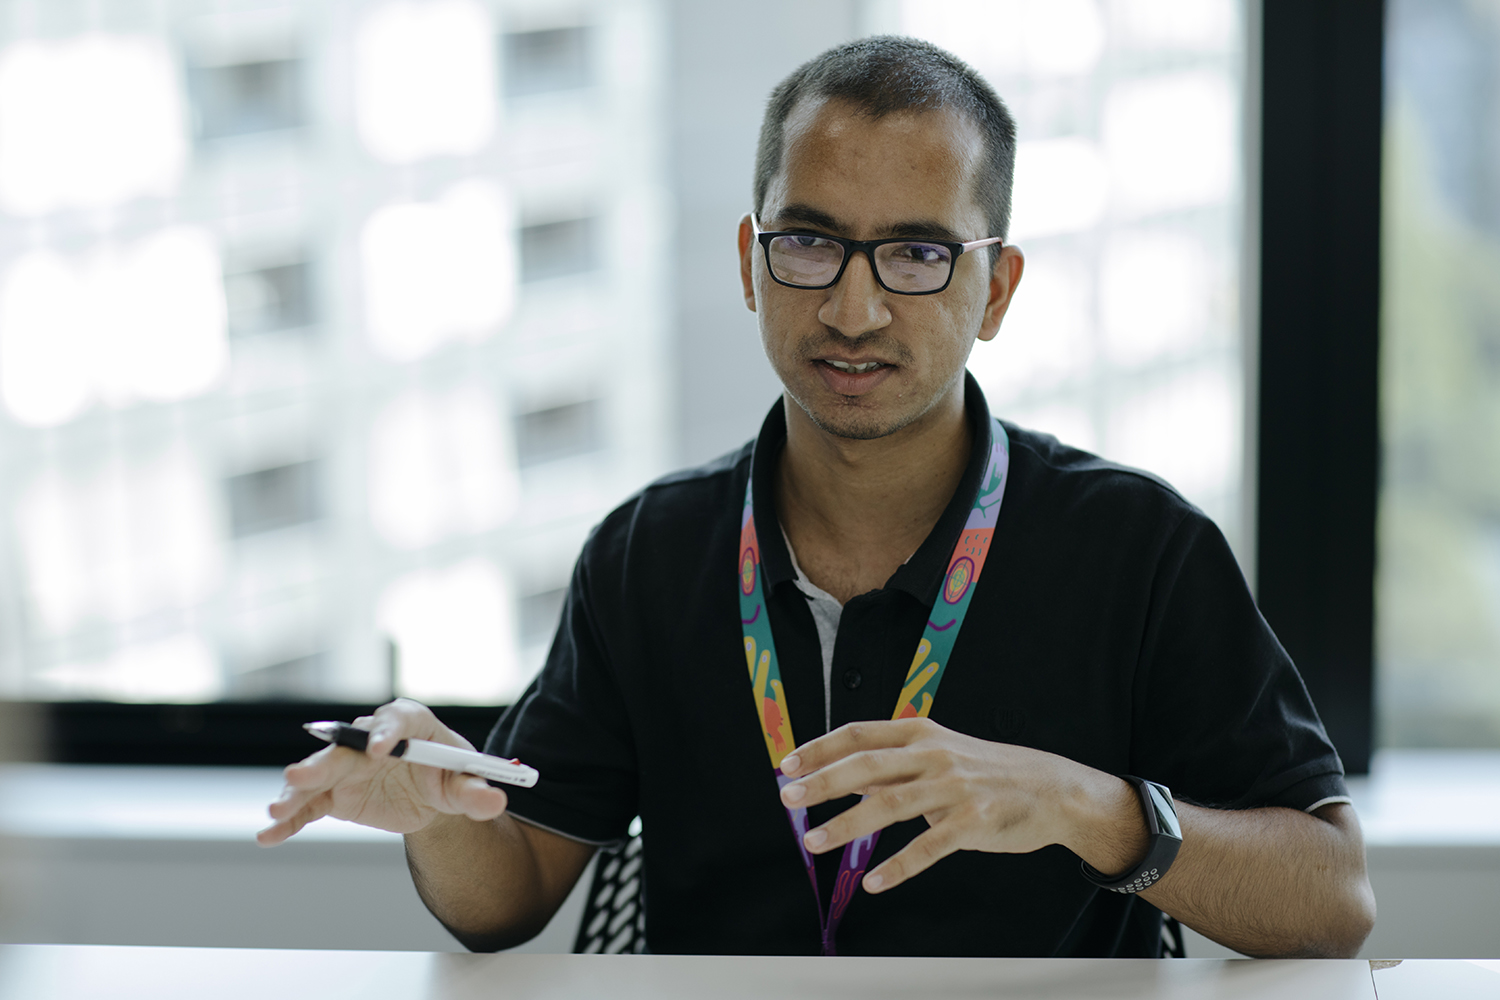 Mushtaq during the interview.